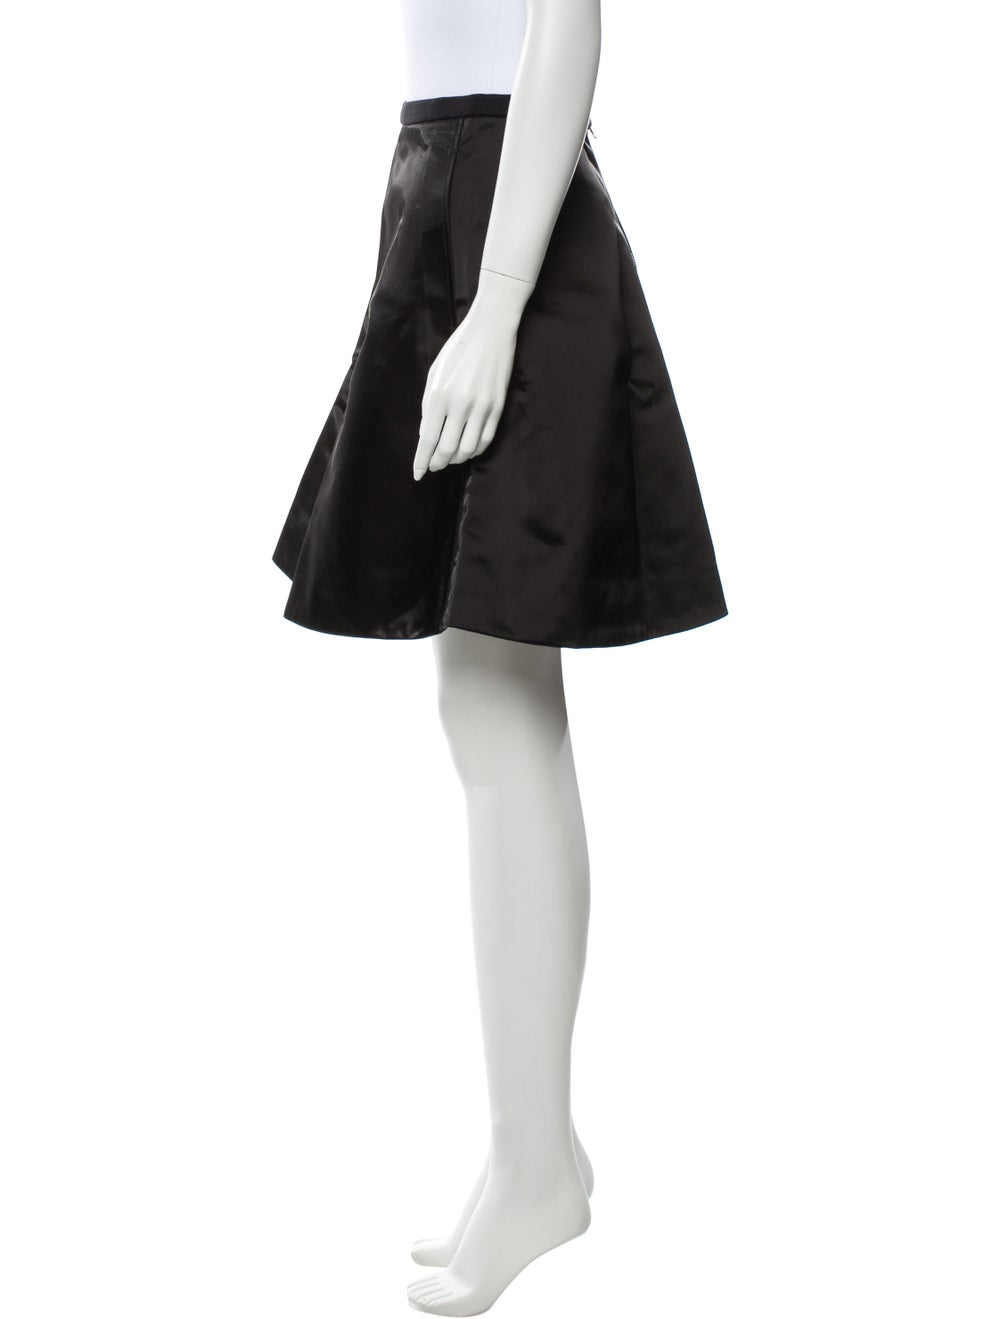 Acne Studios Knee-Length Skirt Black - image 2